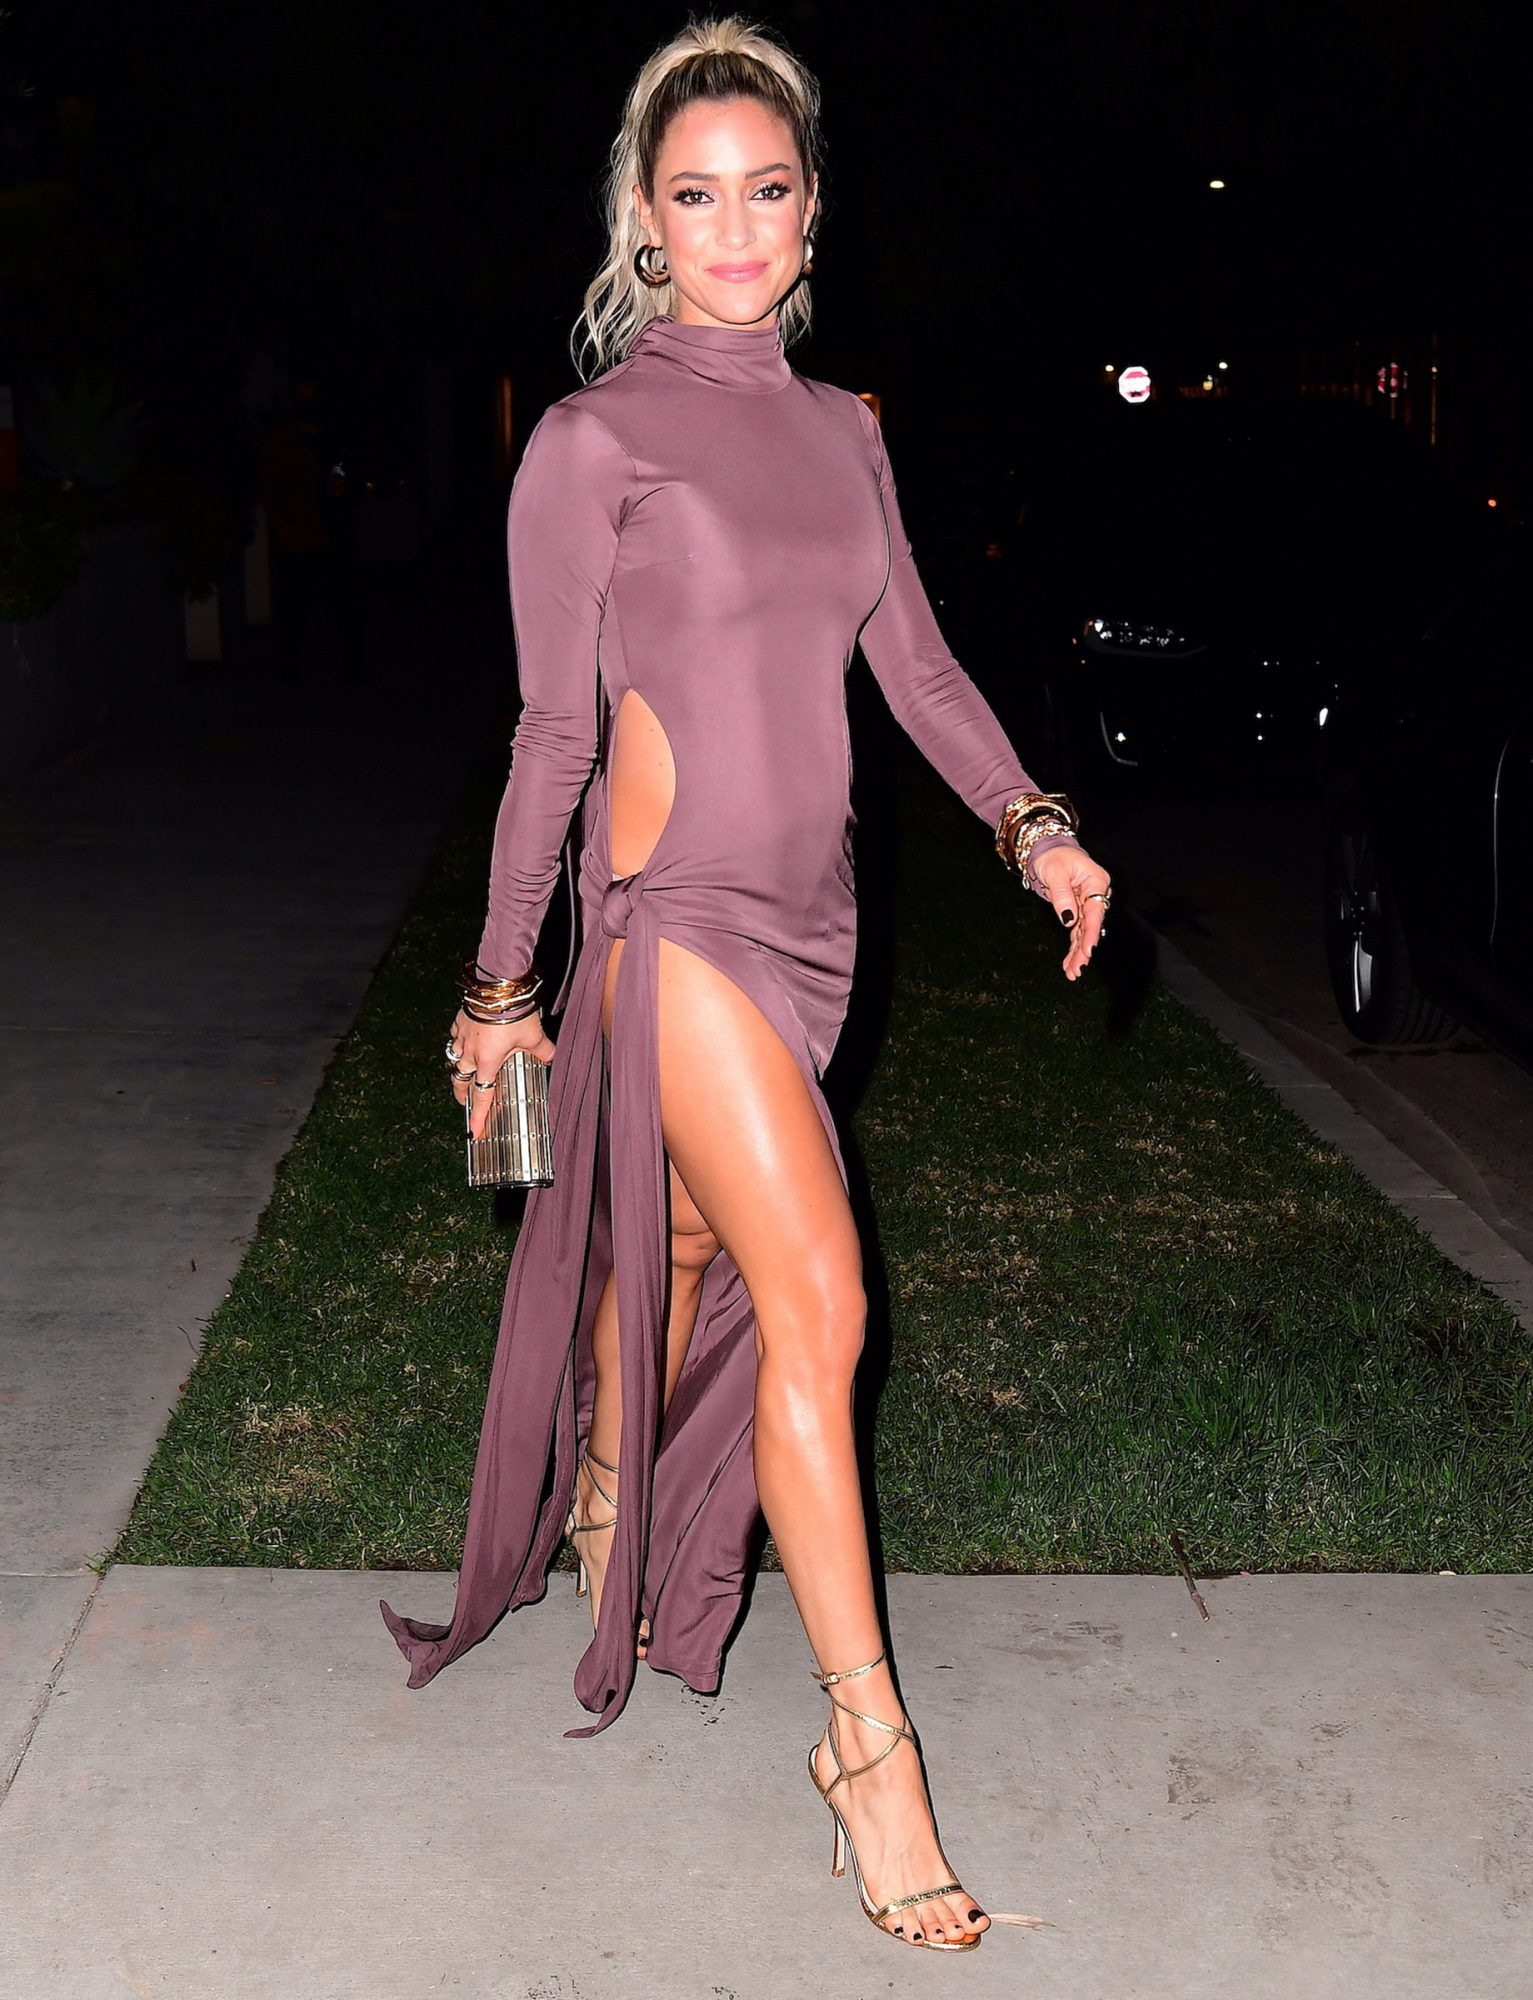 Kristin Cavallari Shows Off Her Stunning Legs as She Heads to the AMA's